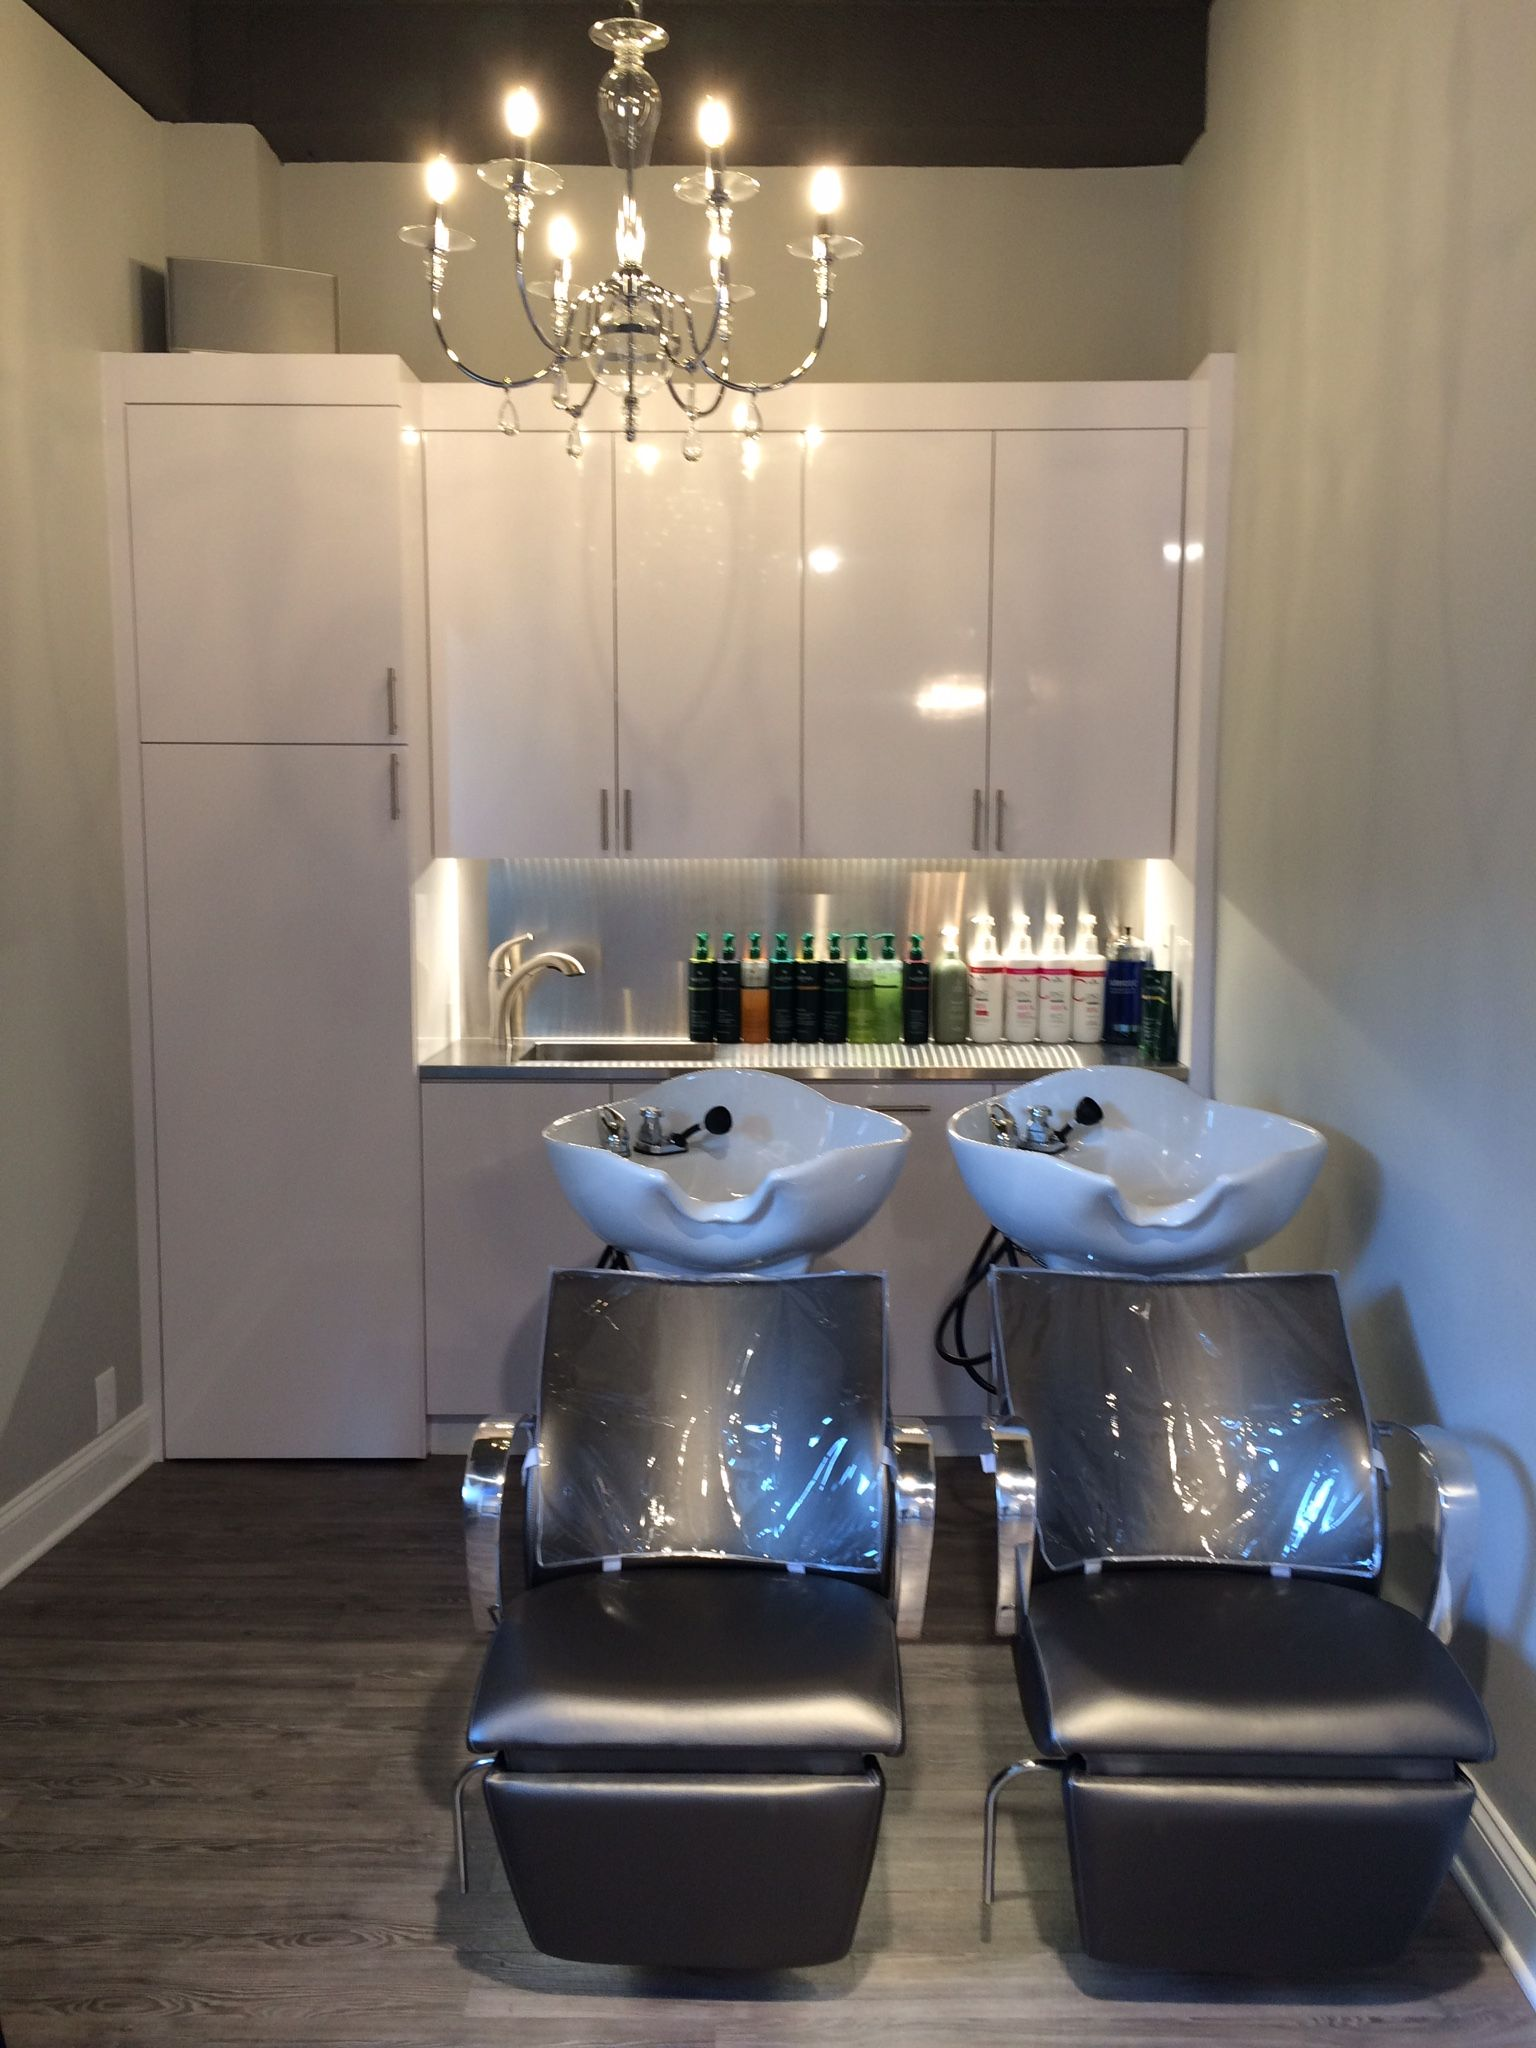 Shampoo bowls with custom cabinets interiors salon for Hair salons designs ideas